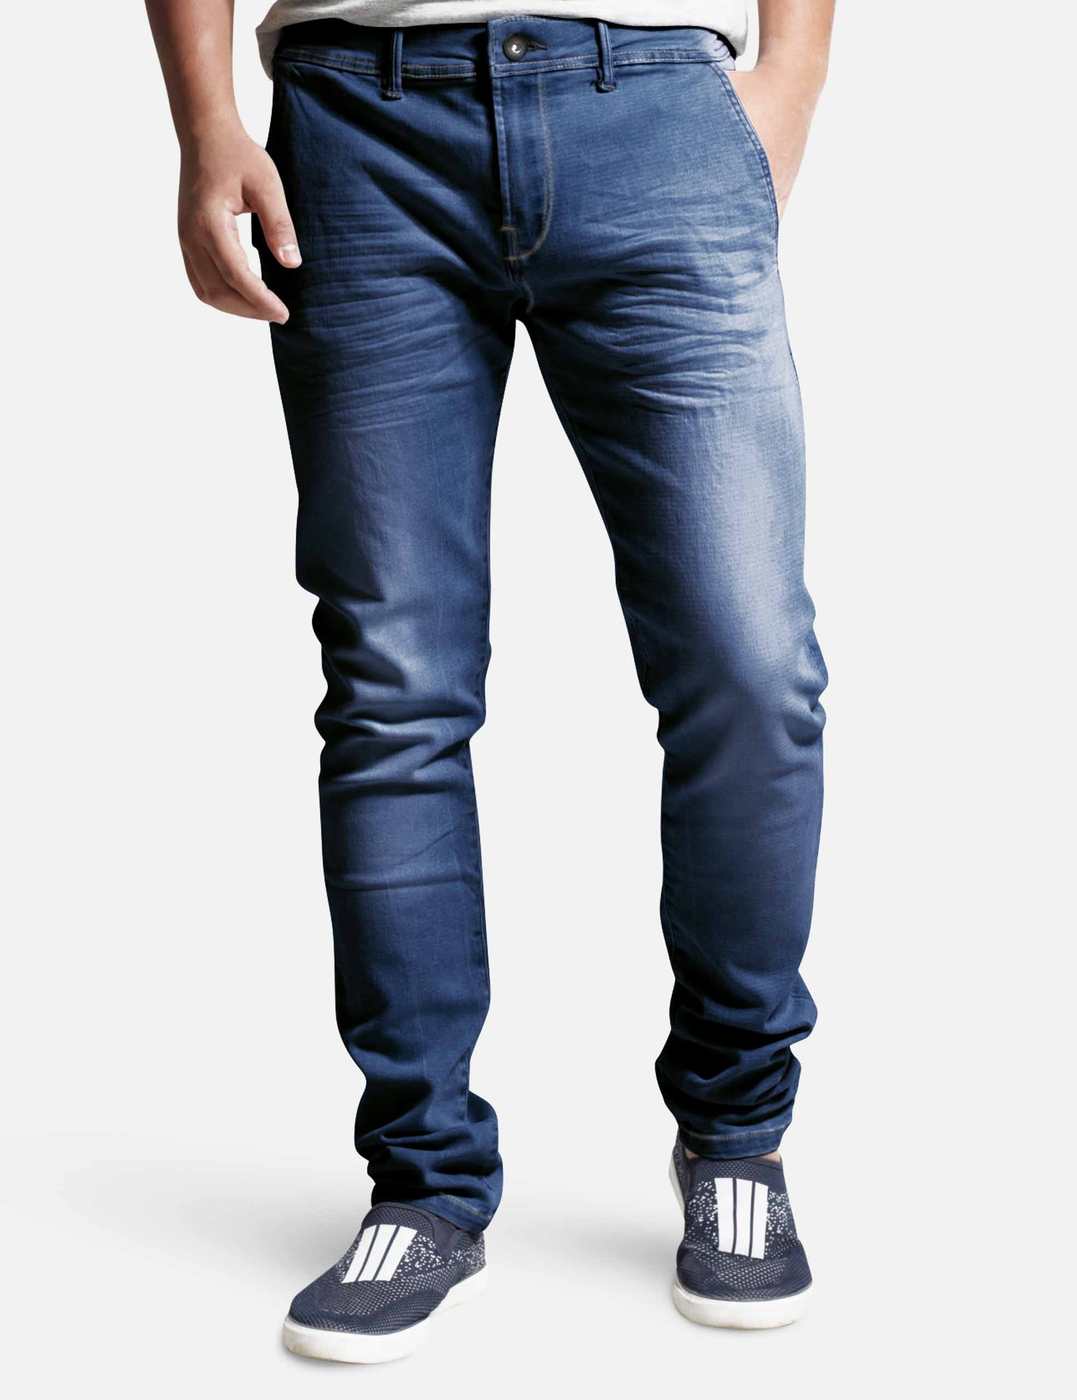 Monroe Stretch Denims - orangeshine.com